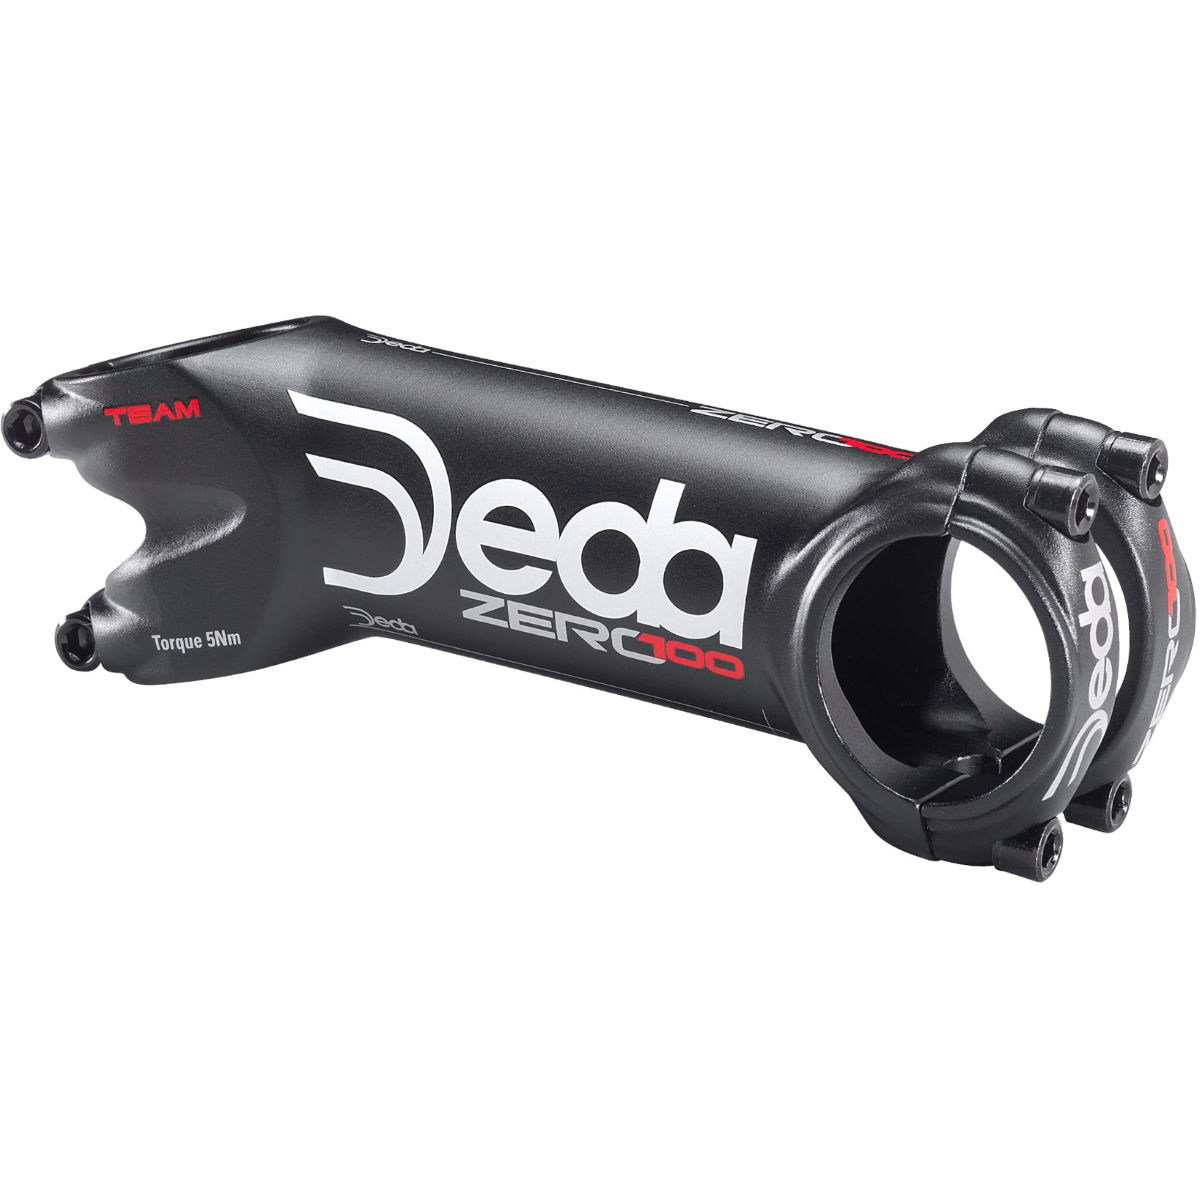 Deda Zero100 Team Stem - Potencias